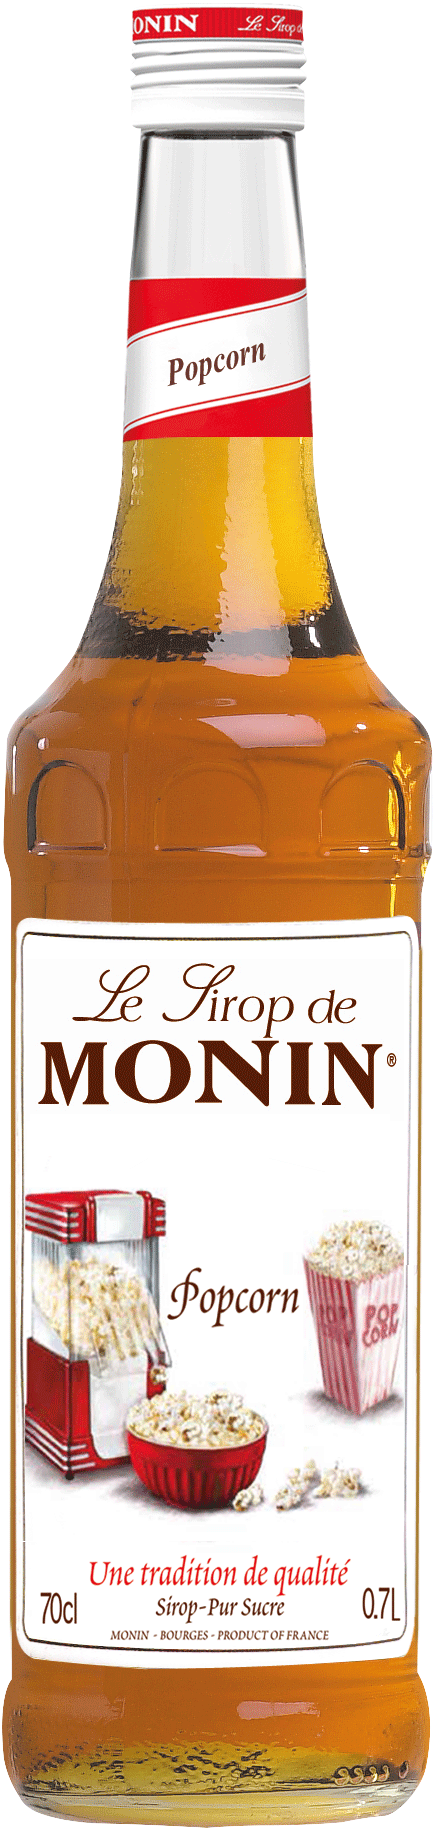 finespirits-Monin Popcorn 0,70l